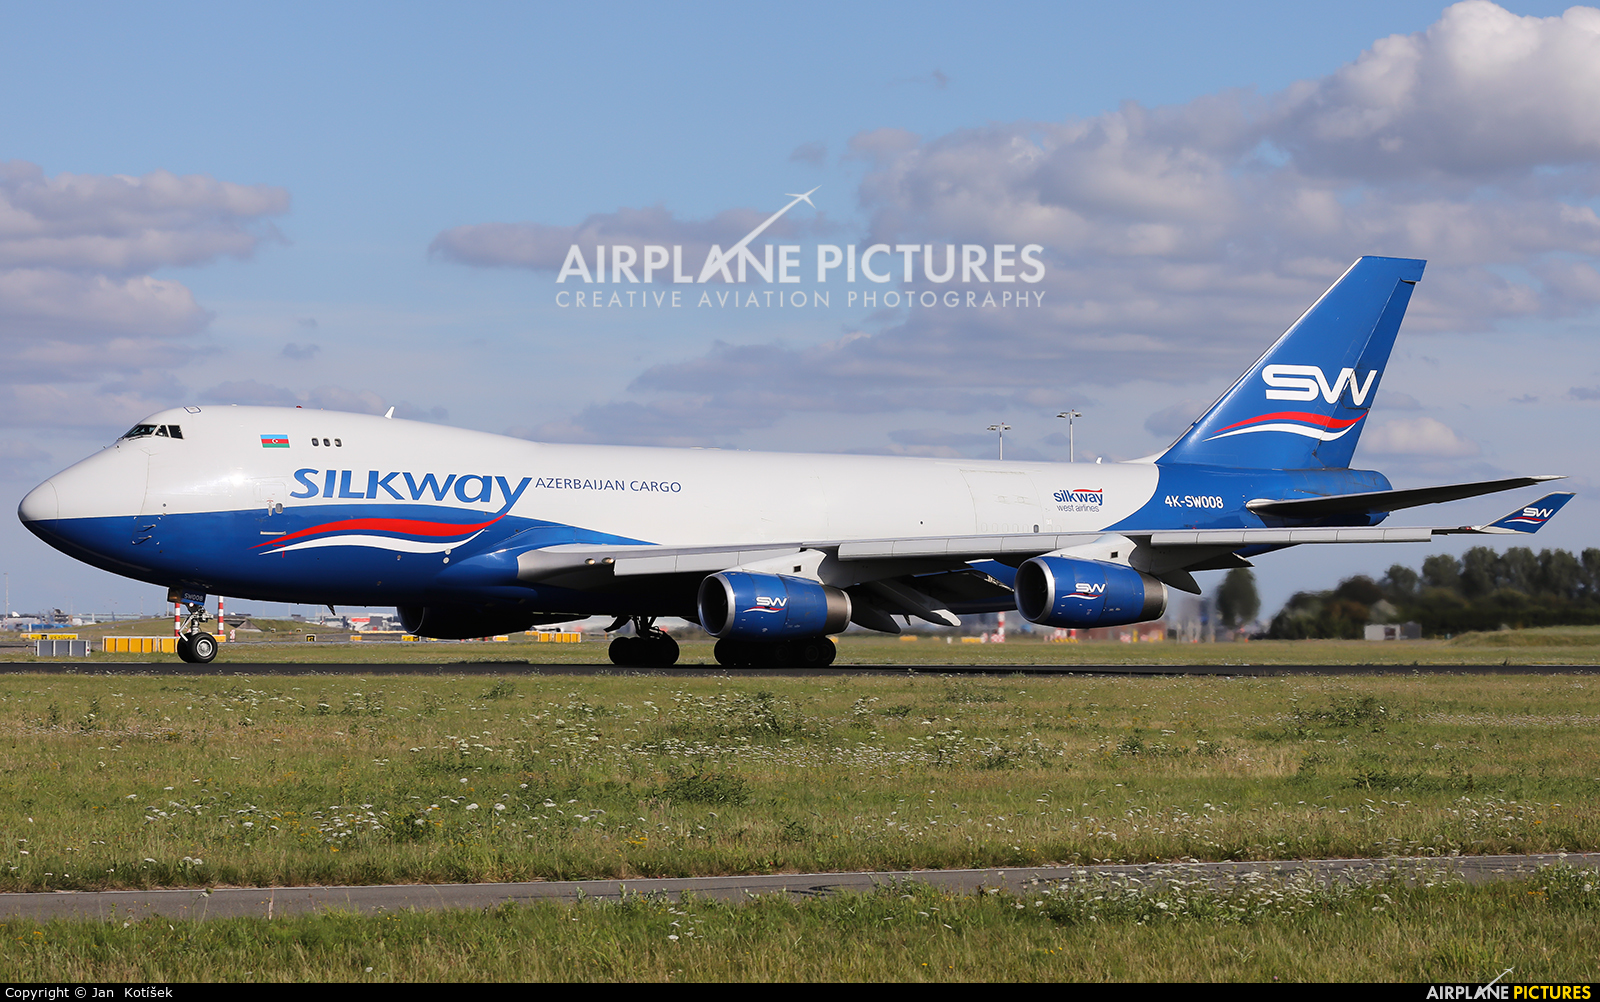 Silk Way Airlines 4K-SW008 aircraft at Amsterdam - Schiphol